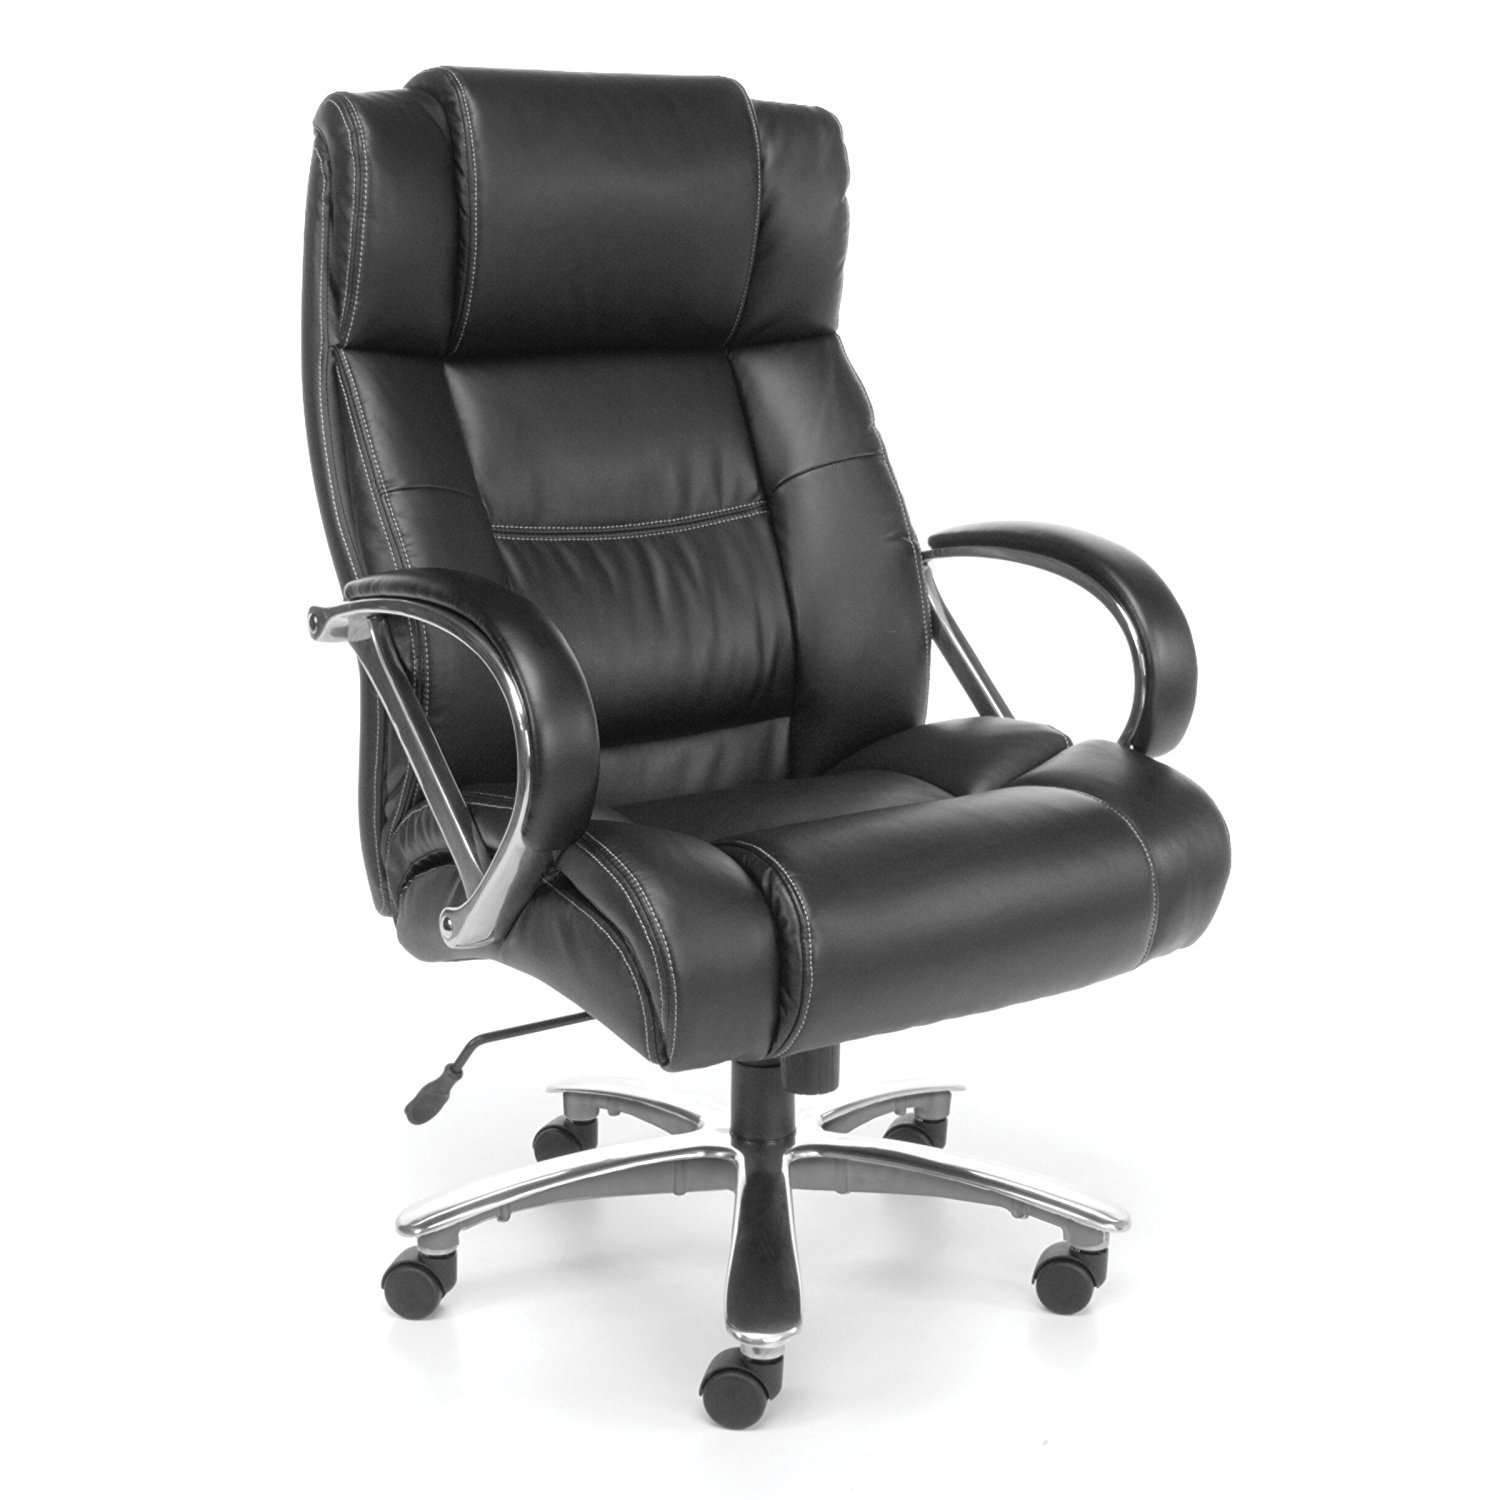 Tall Chair 10 Big And Tall Office Chairs For Extra Large Comfort